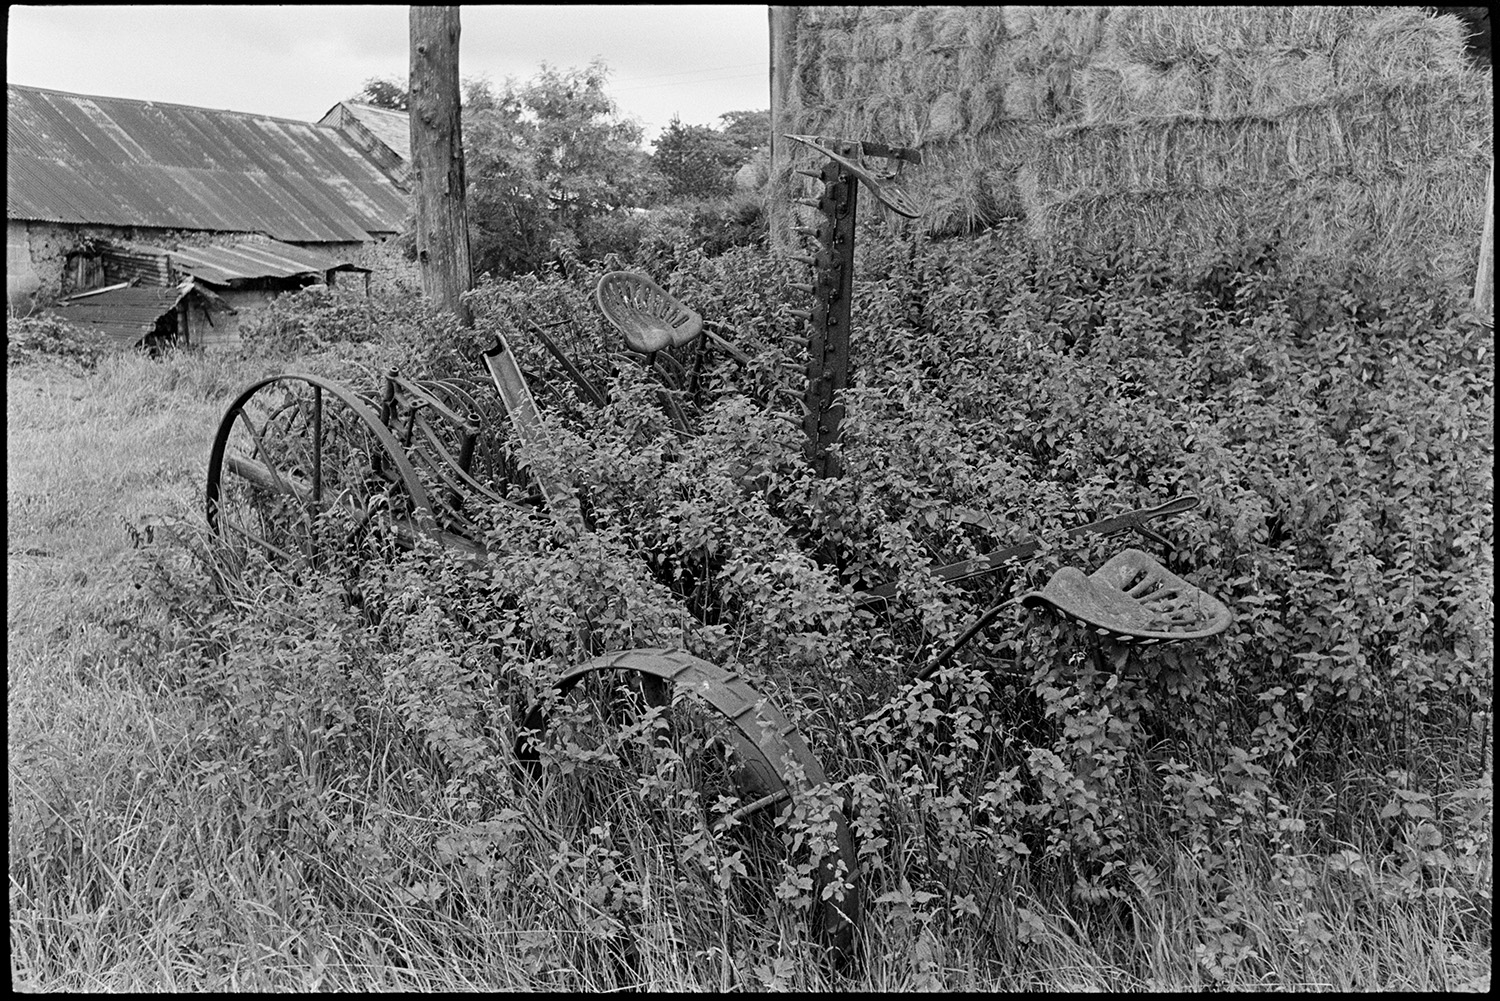 Barn with old farm machinery and horse drawn cart. Nettles. <br /> [A piece of old farm machinery, possibly a mower or cutter, overgrown with stinging nettles next to a stack of hay bales, possibly near Holsworthy. Another barn with a corrugated iron roof can be seen in the background.]